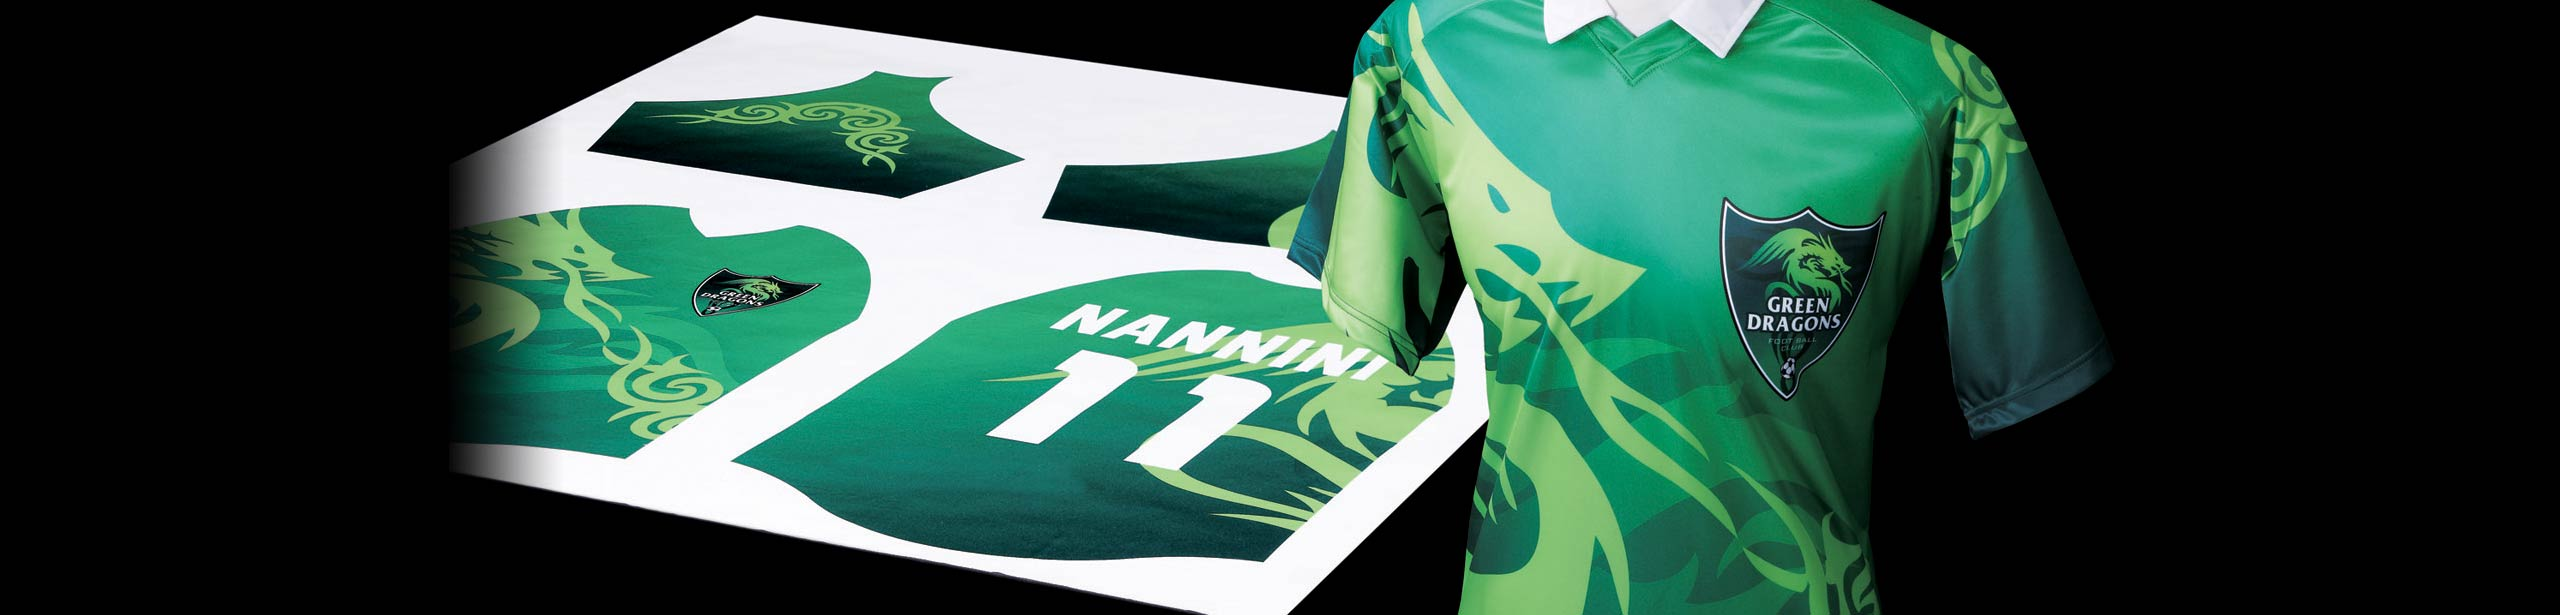 Sublimation auf Jersey